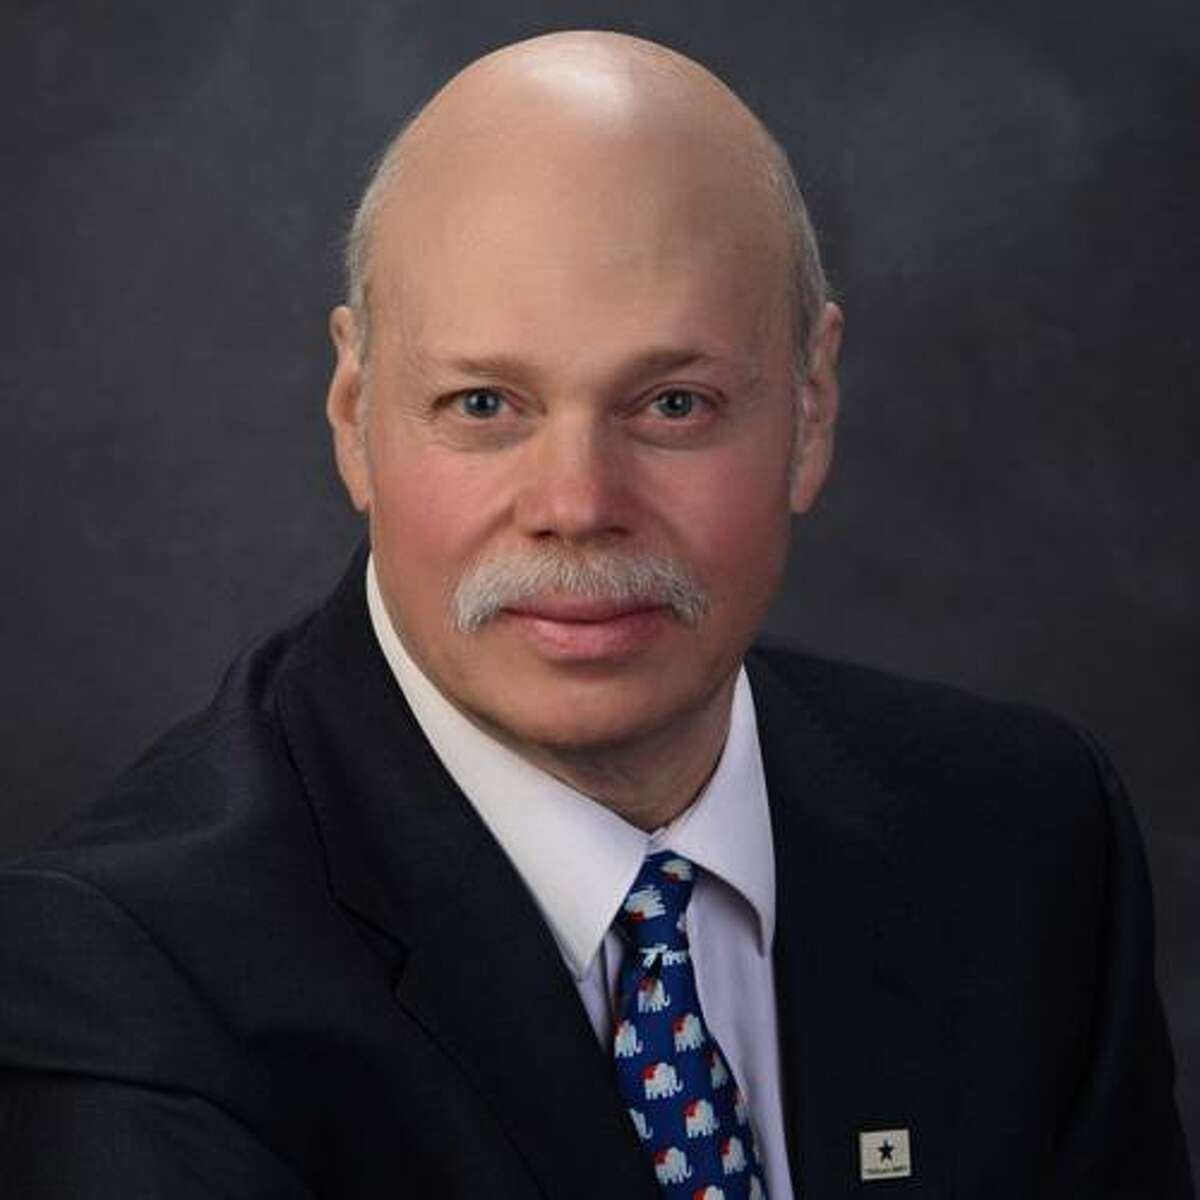 Jeff Larson is running for the Clear Creek ISD District 4 seat against incumbent Page Rander.